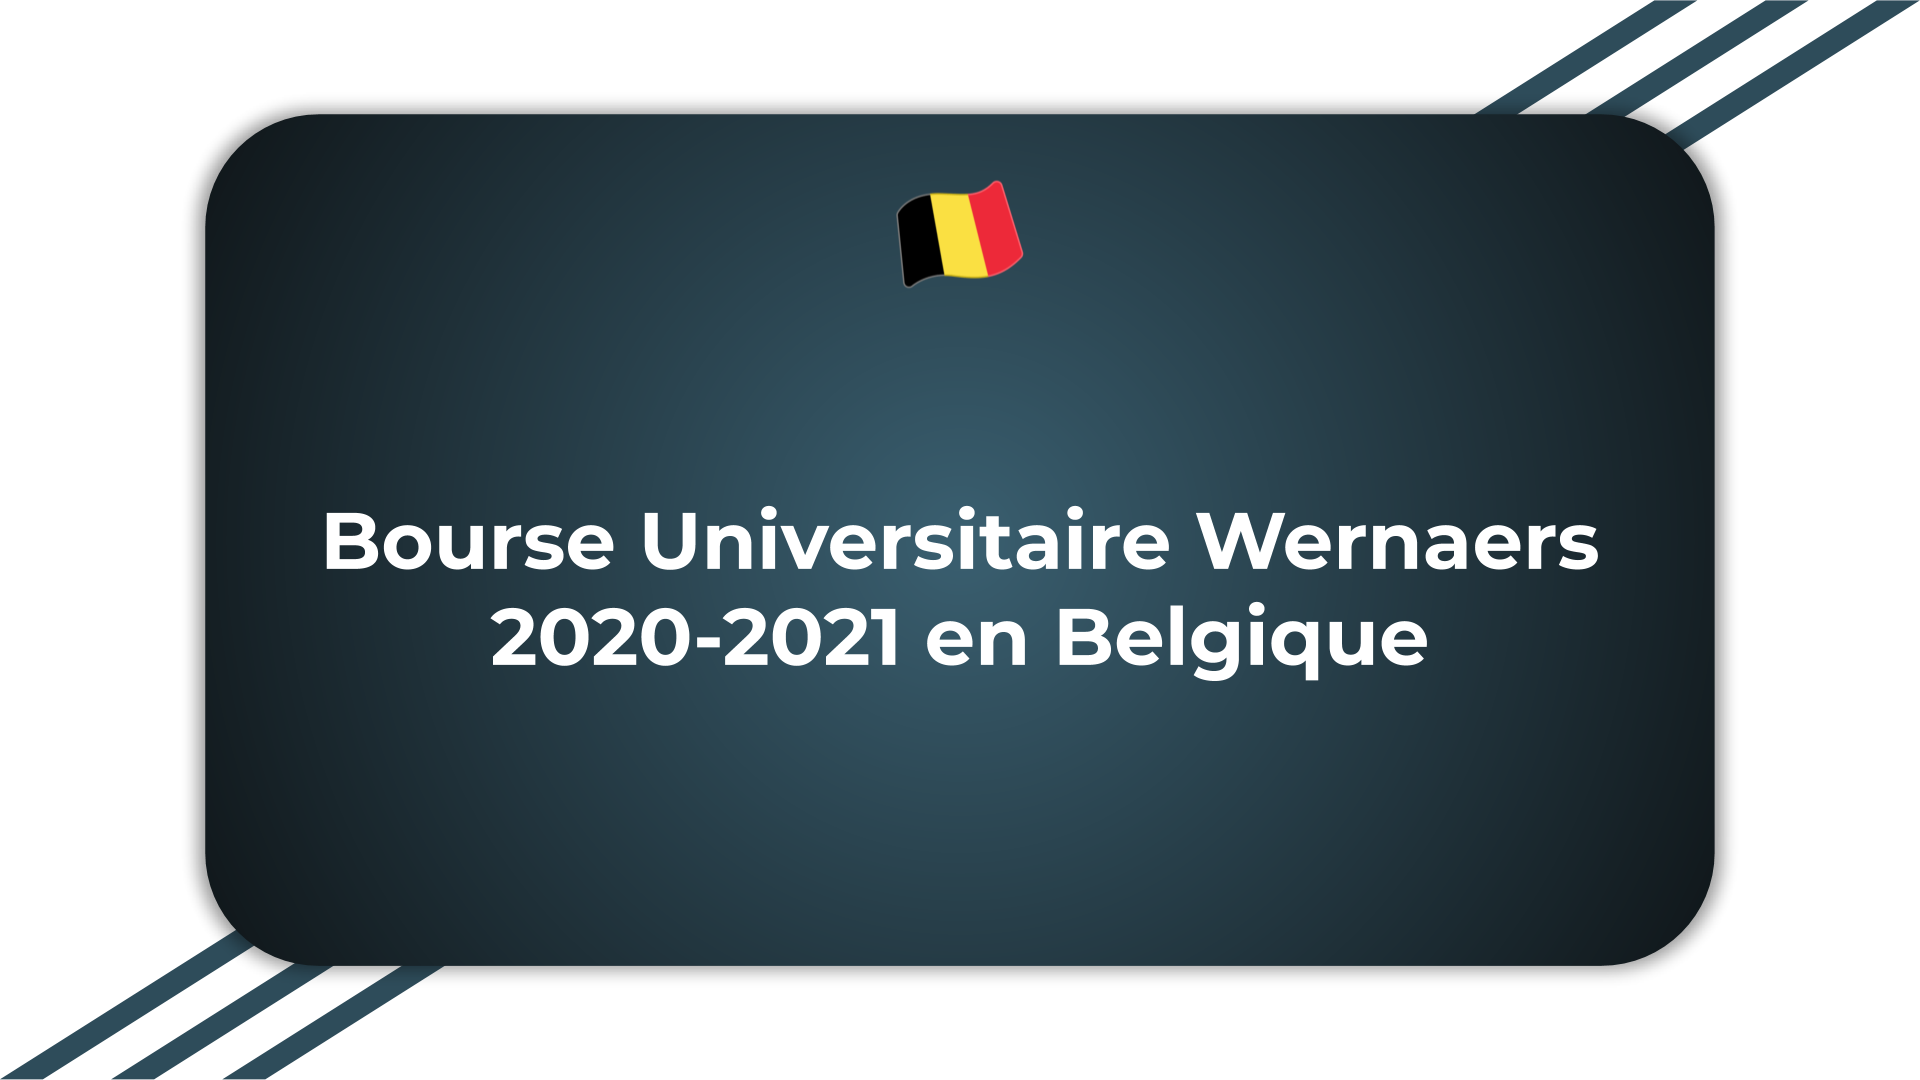 Bourse Universitaire Wernaers